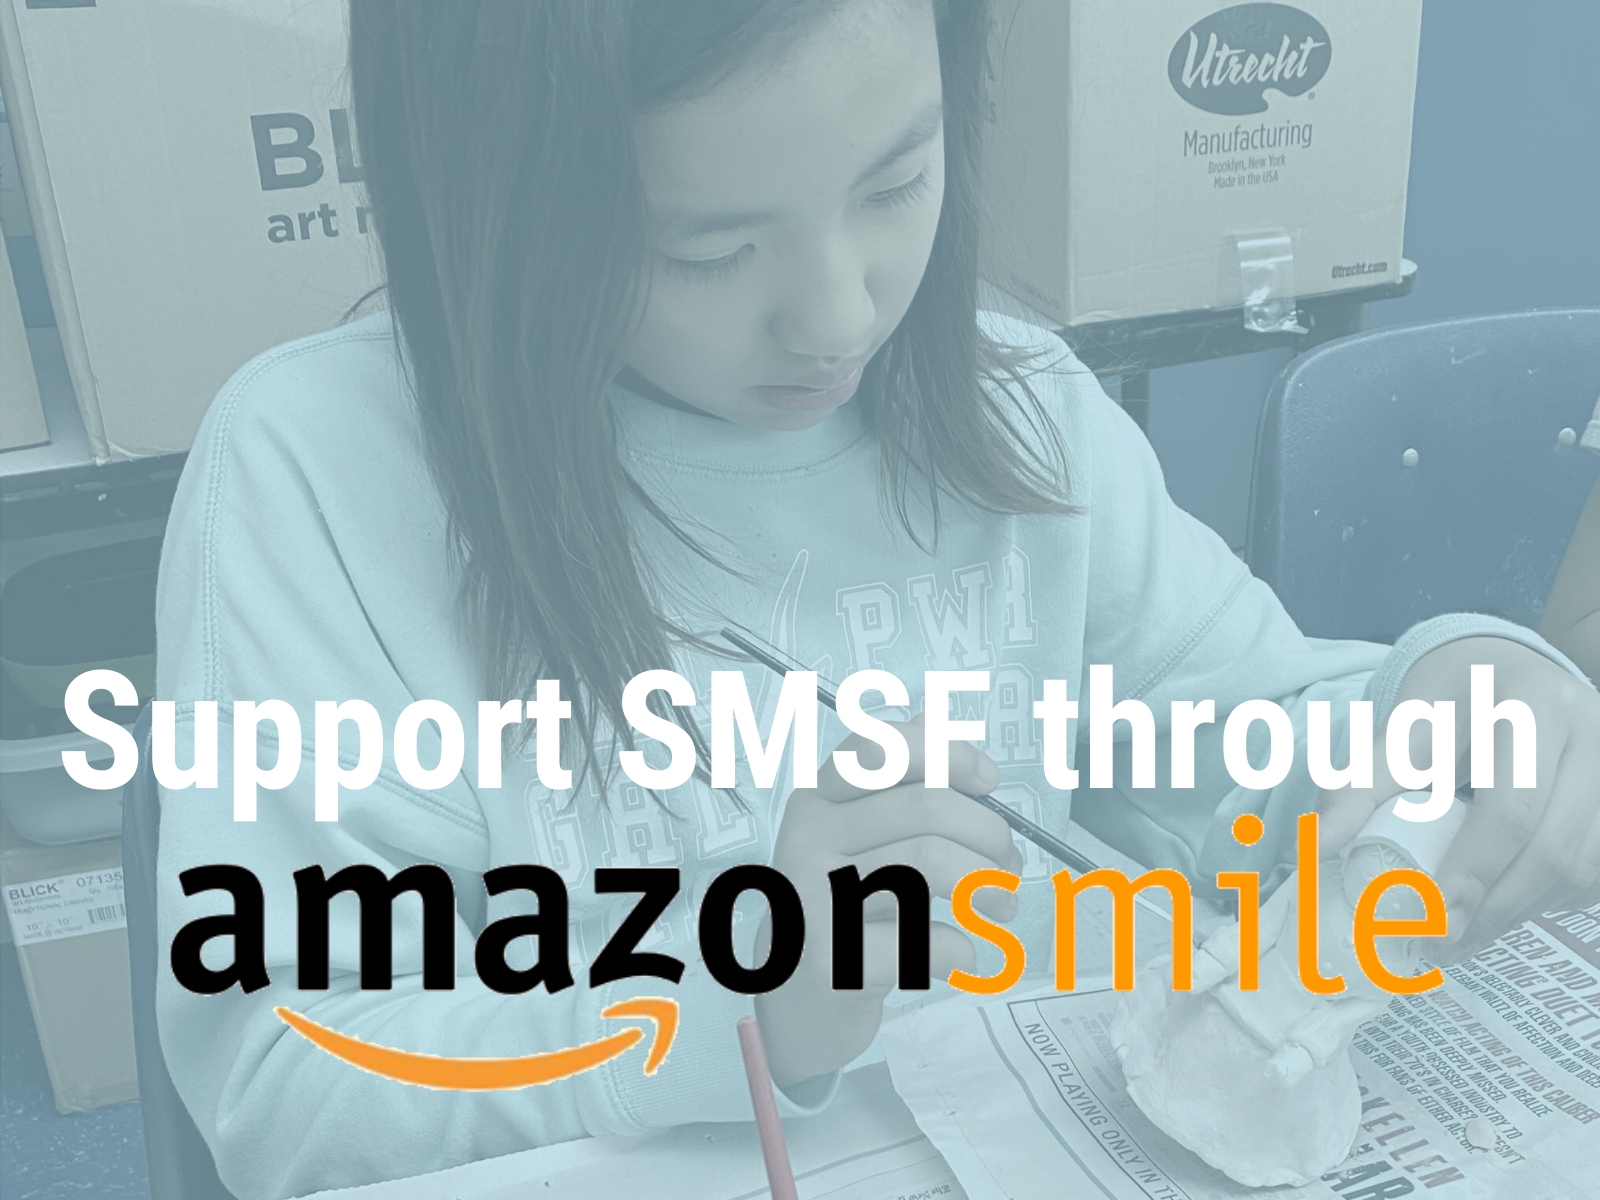 You Can Support SMSF While Holiday Shopping